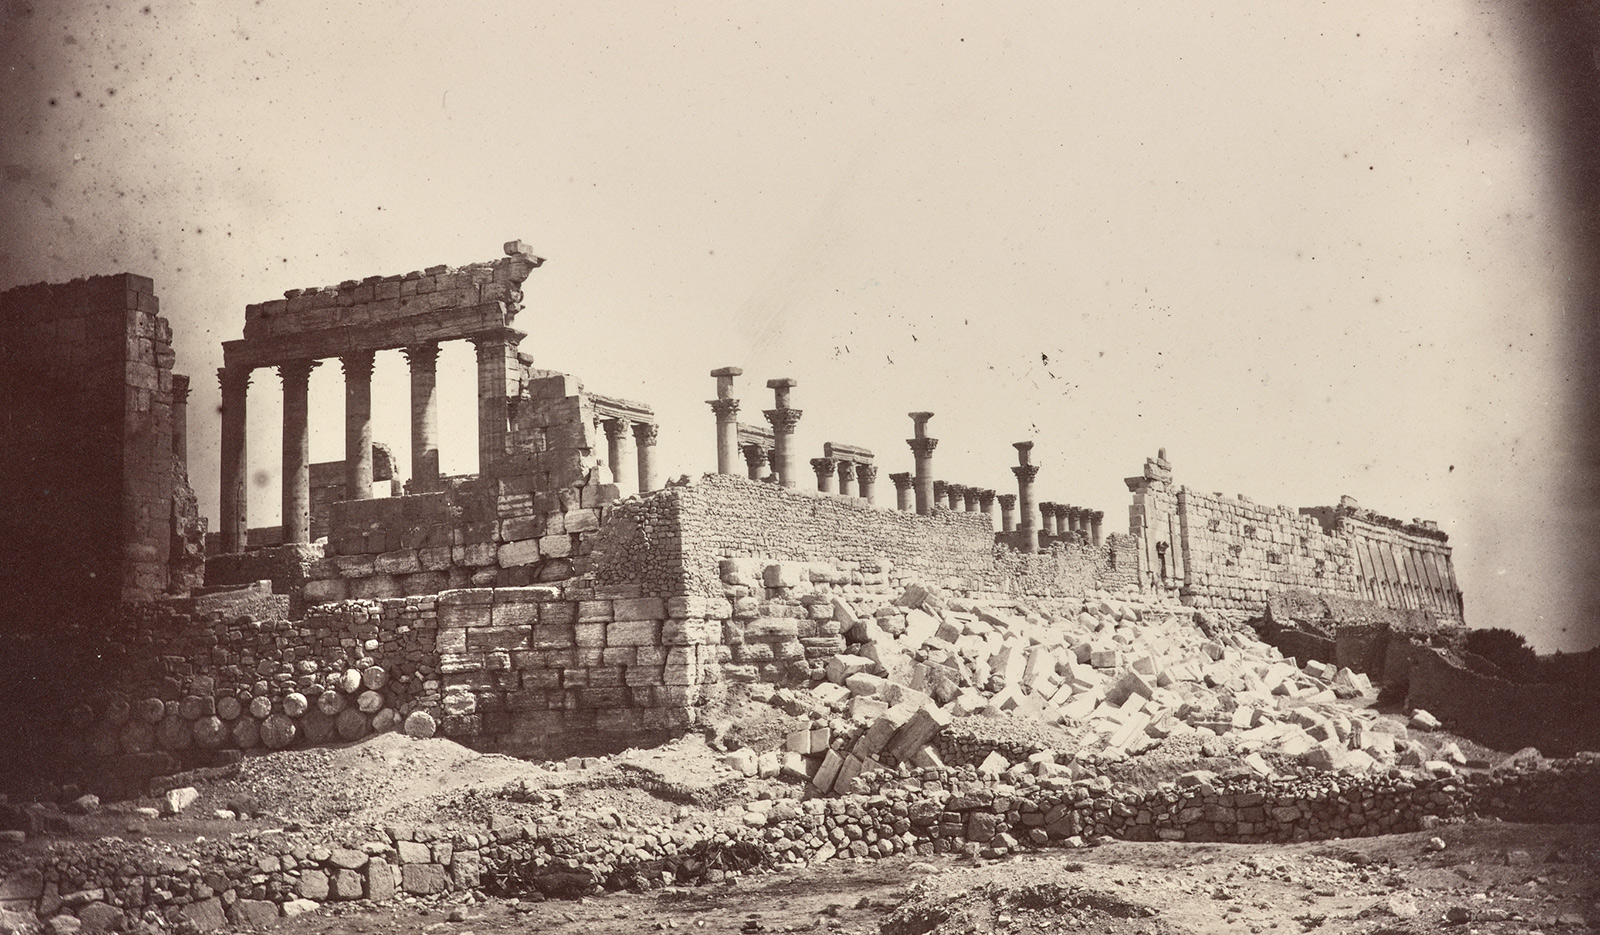 A sepia-toned photo showing a monumental set of ruins with Roman-style columns